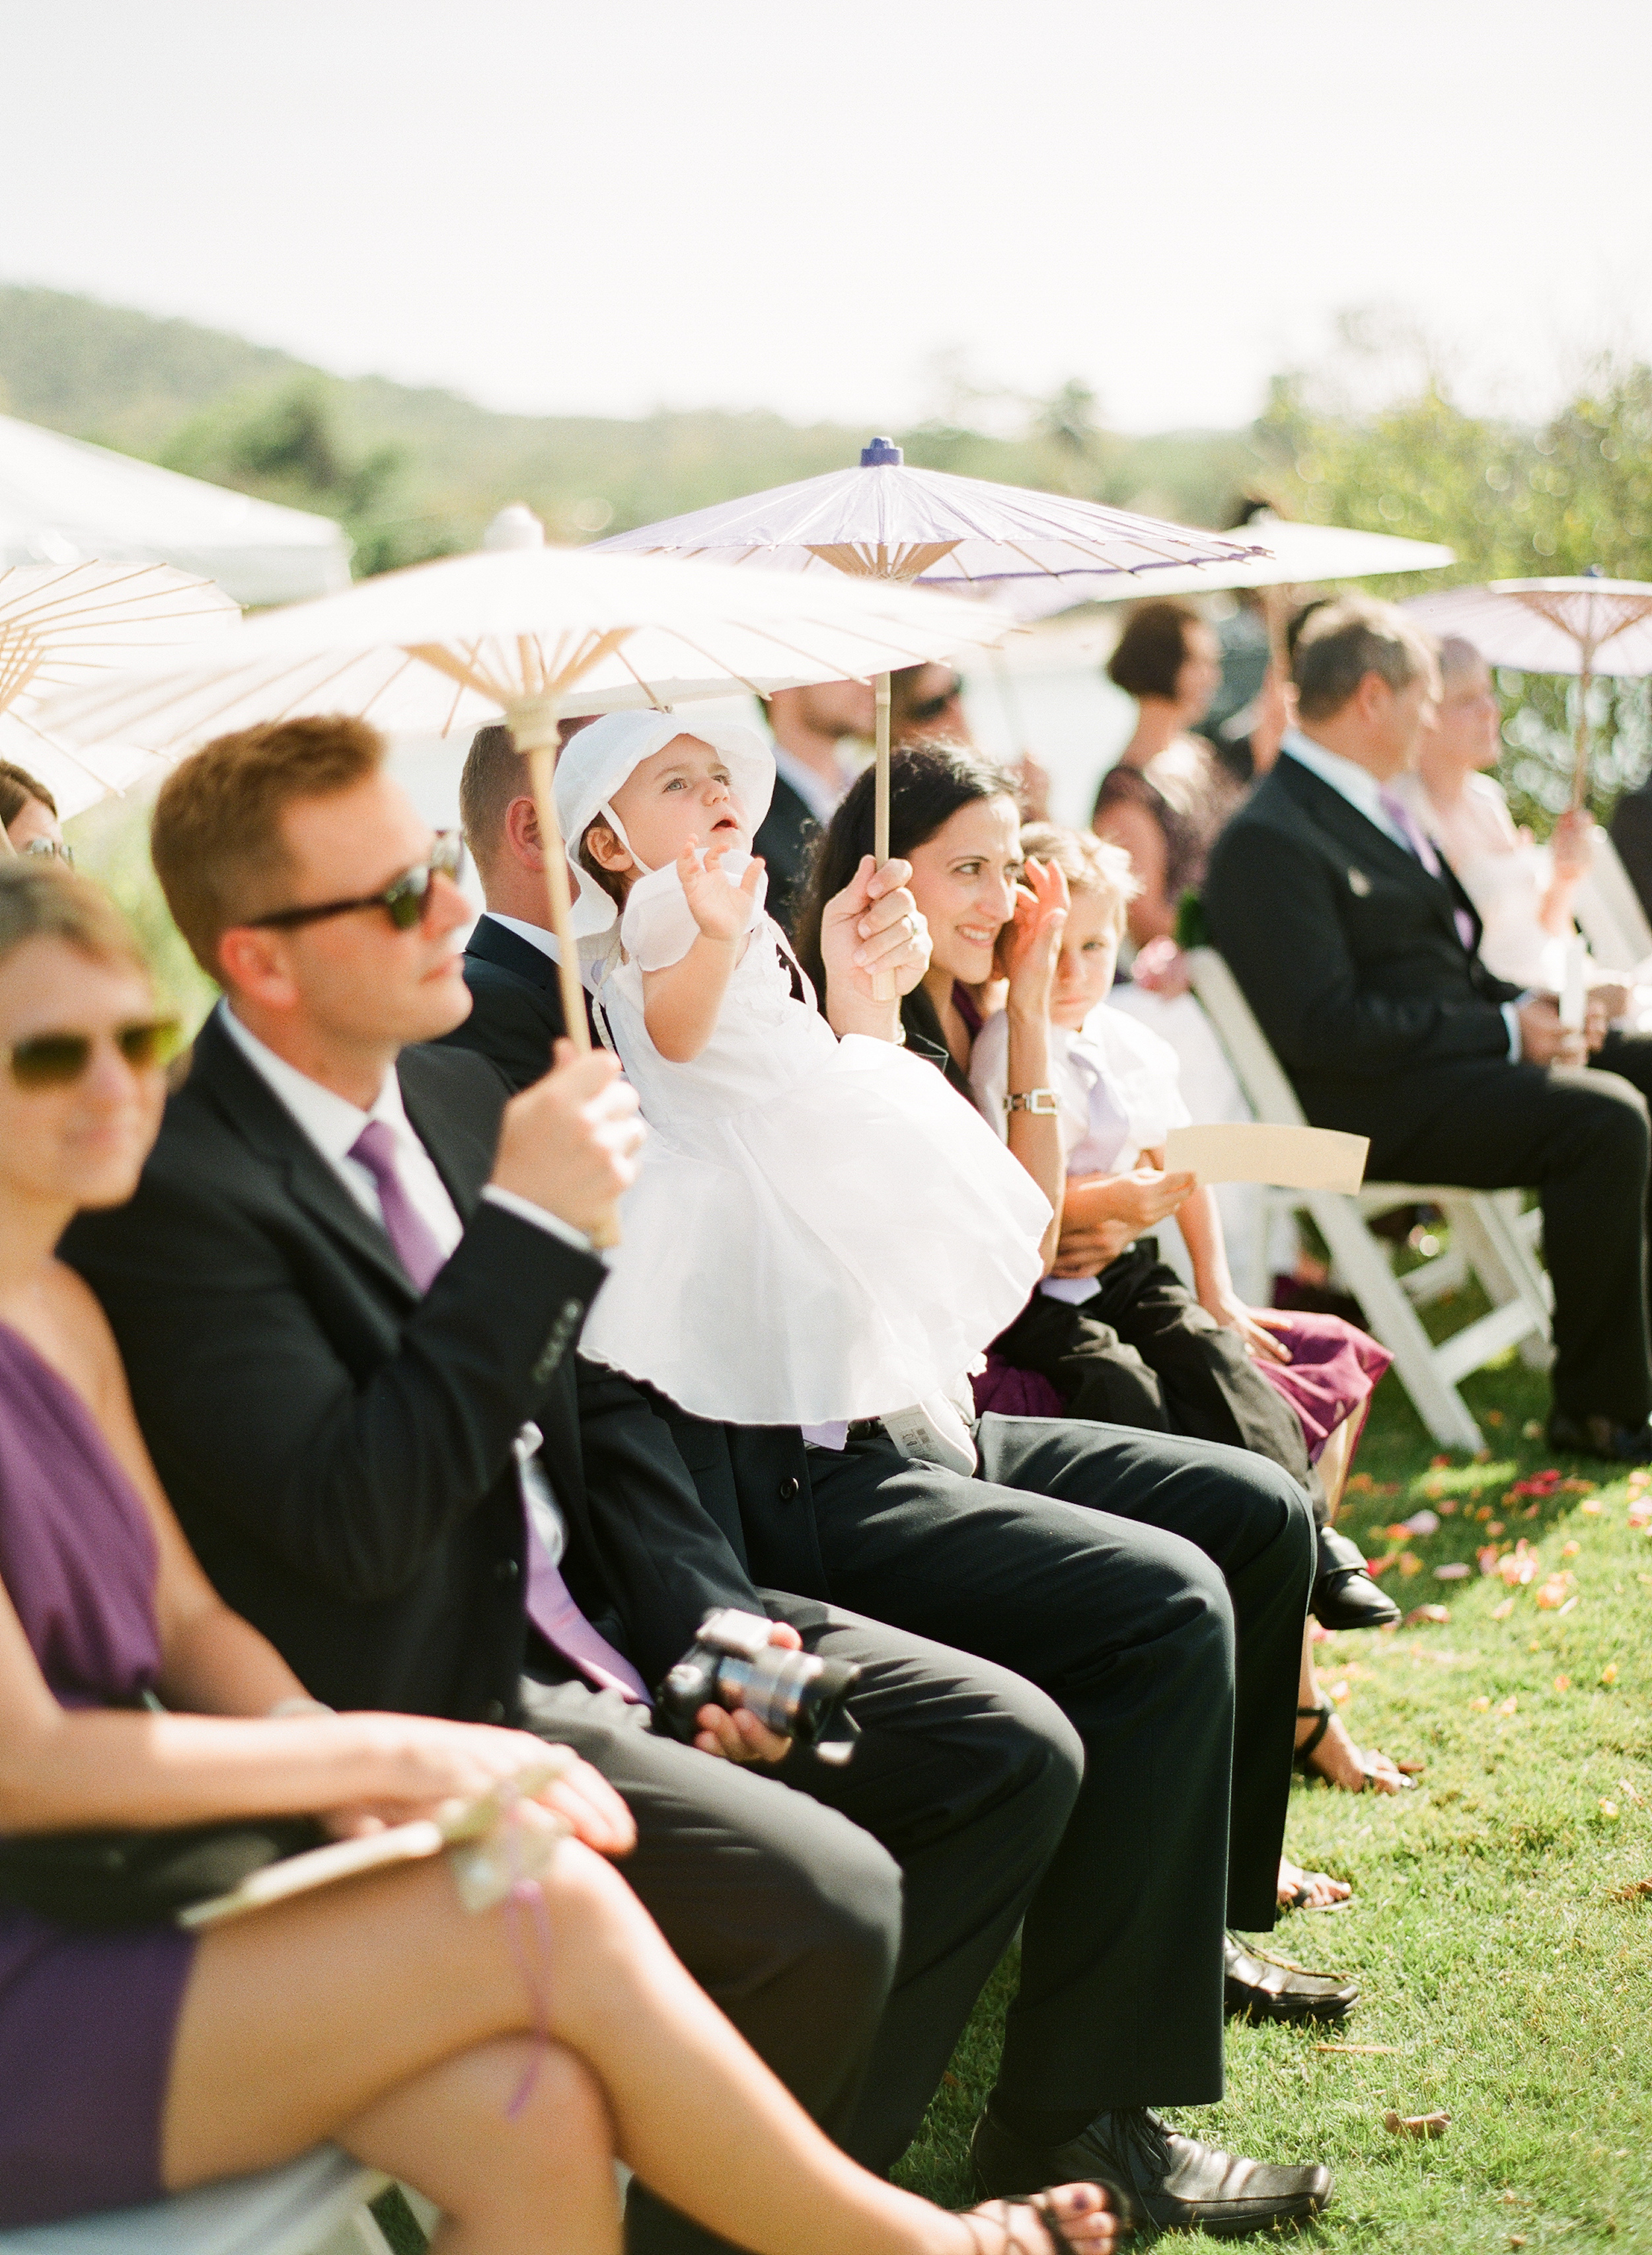 Guests use beautiful shade umbrellas for weddings to shield their faces from the sun during this Destination Wedding at the W hotel on Vieques Island Puerto Rico photographed by Destination wedding photographer, Lexia Frank, a film photographer specializing in destination weddings and luxury weddings worldwide.